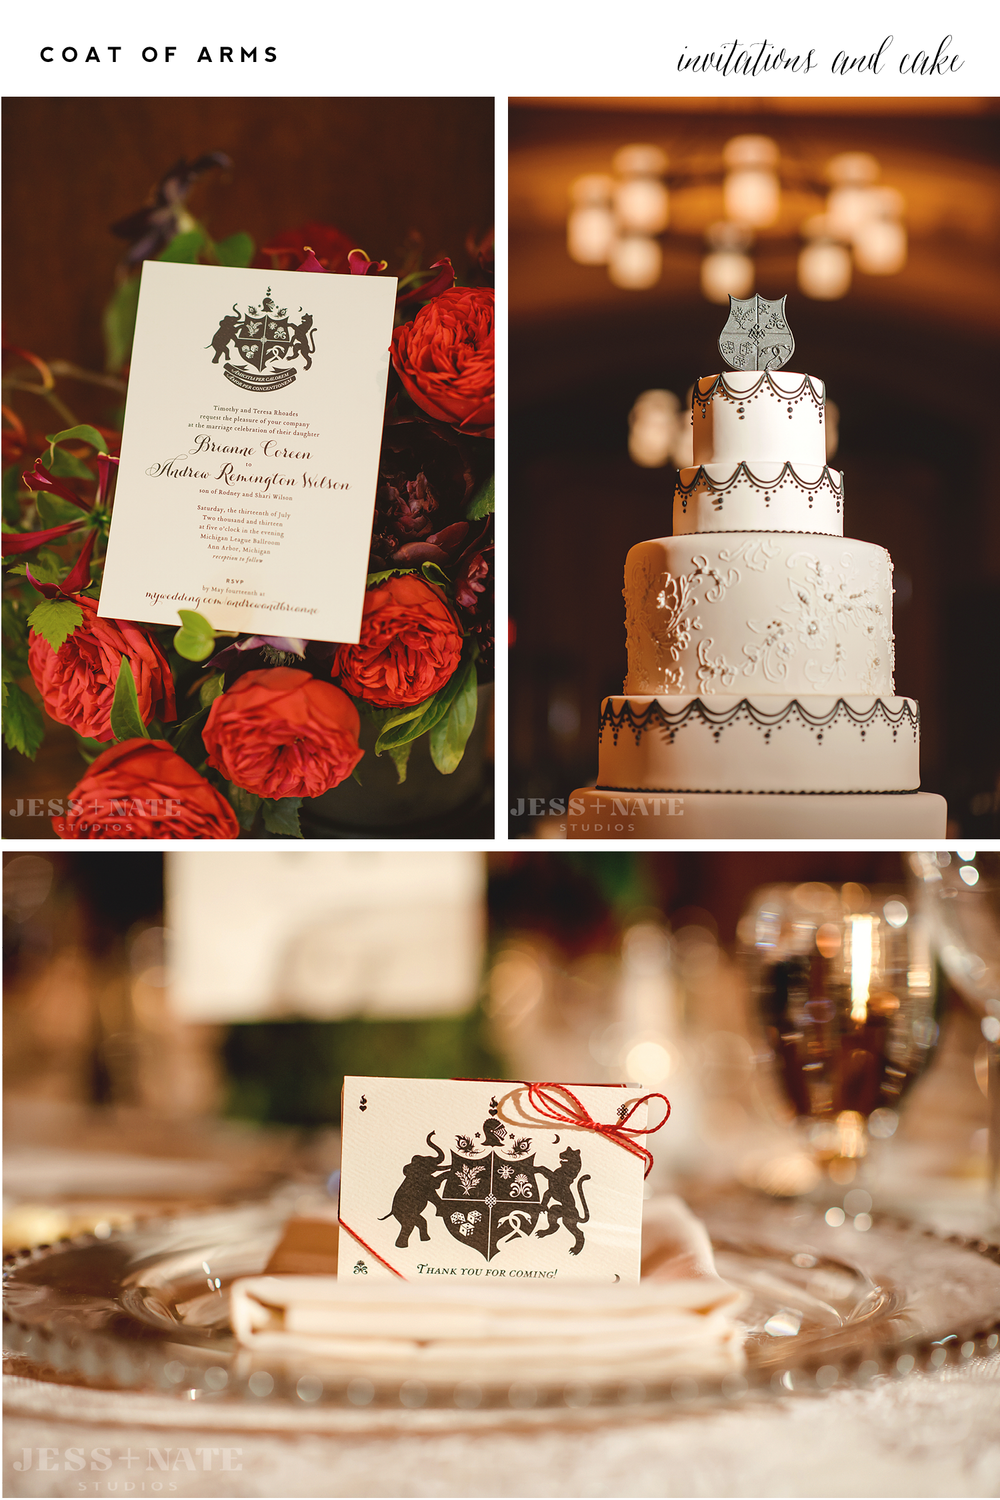 Alisa Bobzien . stationery |  Jess + Nate Studios , photography |  Sweet Heather Anne , cake |  VLD  Events, event design |  Passionflower , floral   Customizable Coat of Arms invitations are available online  here .